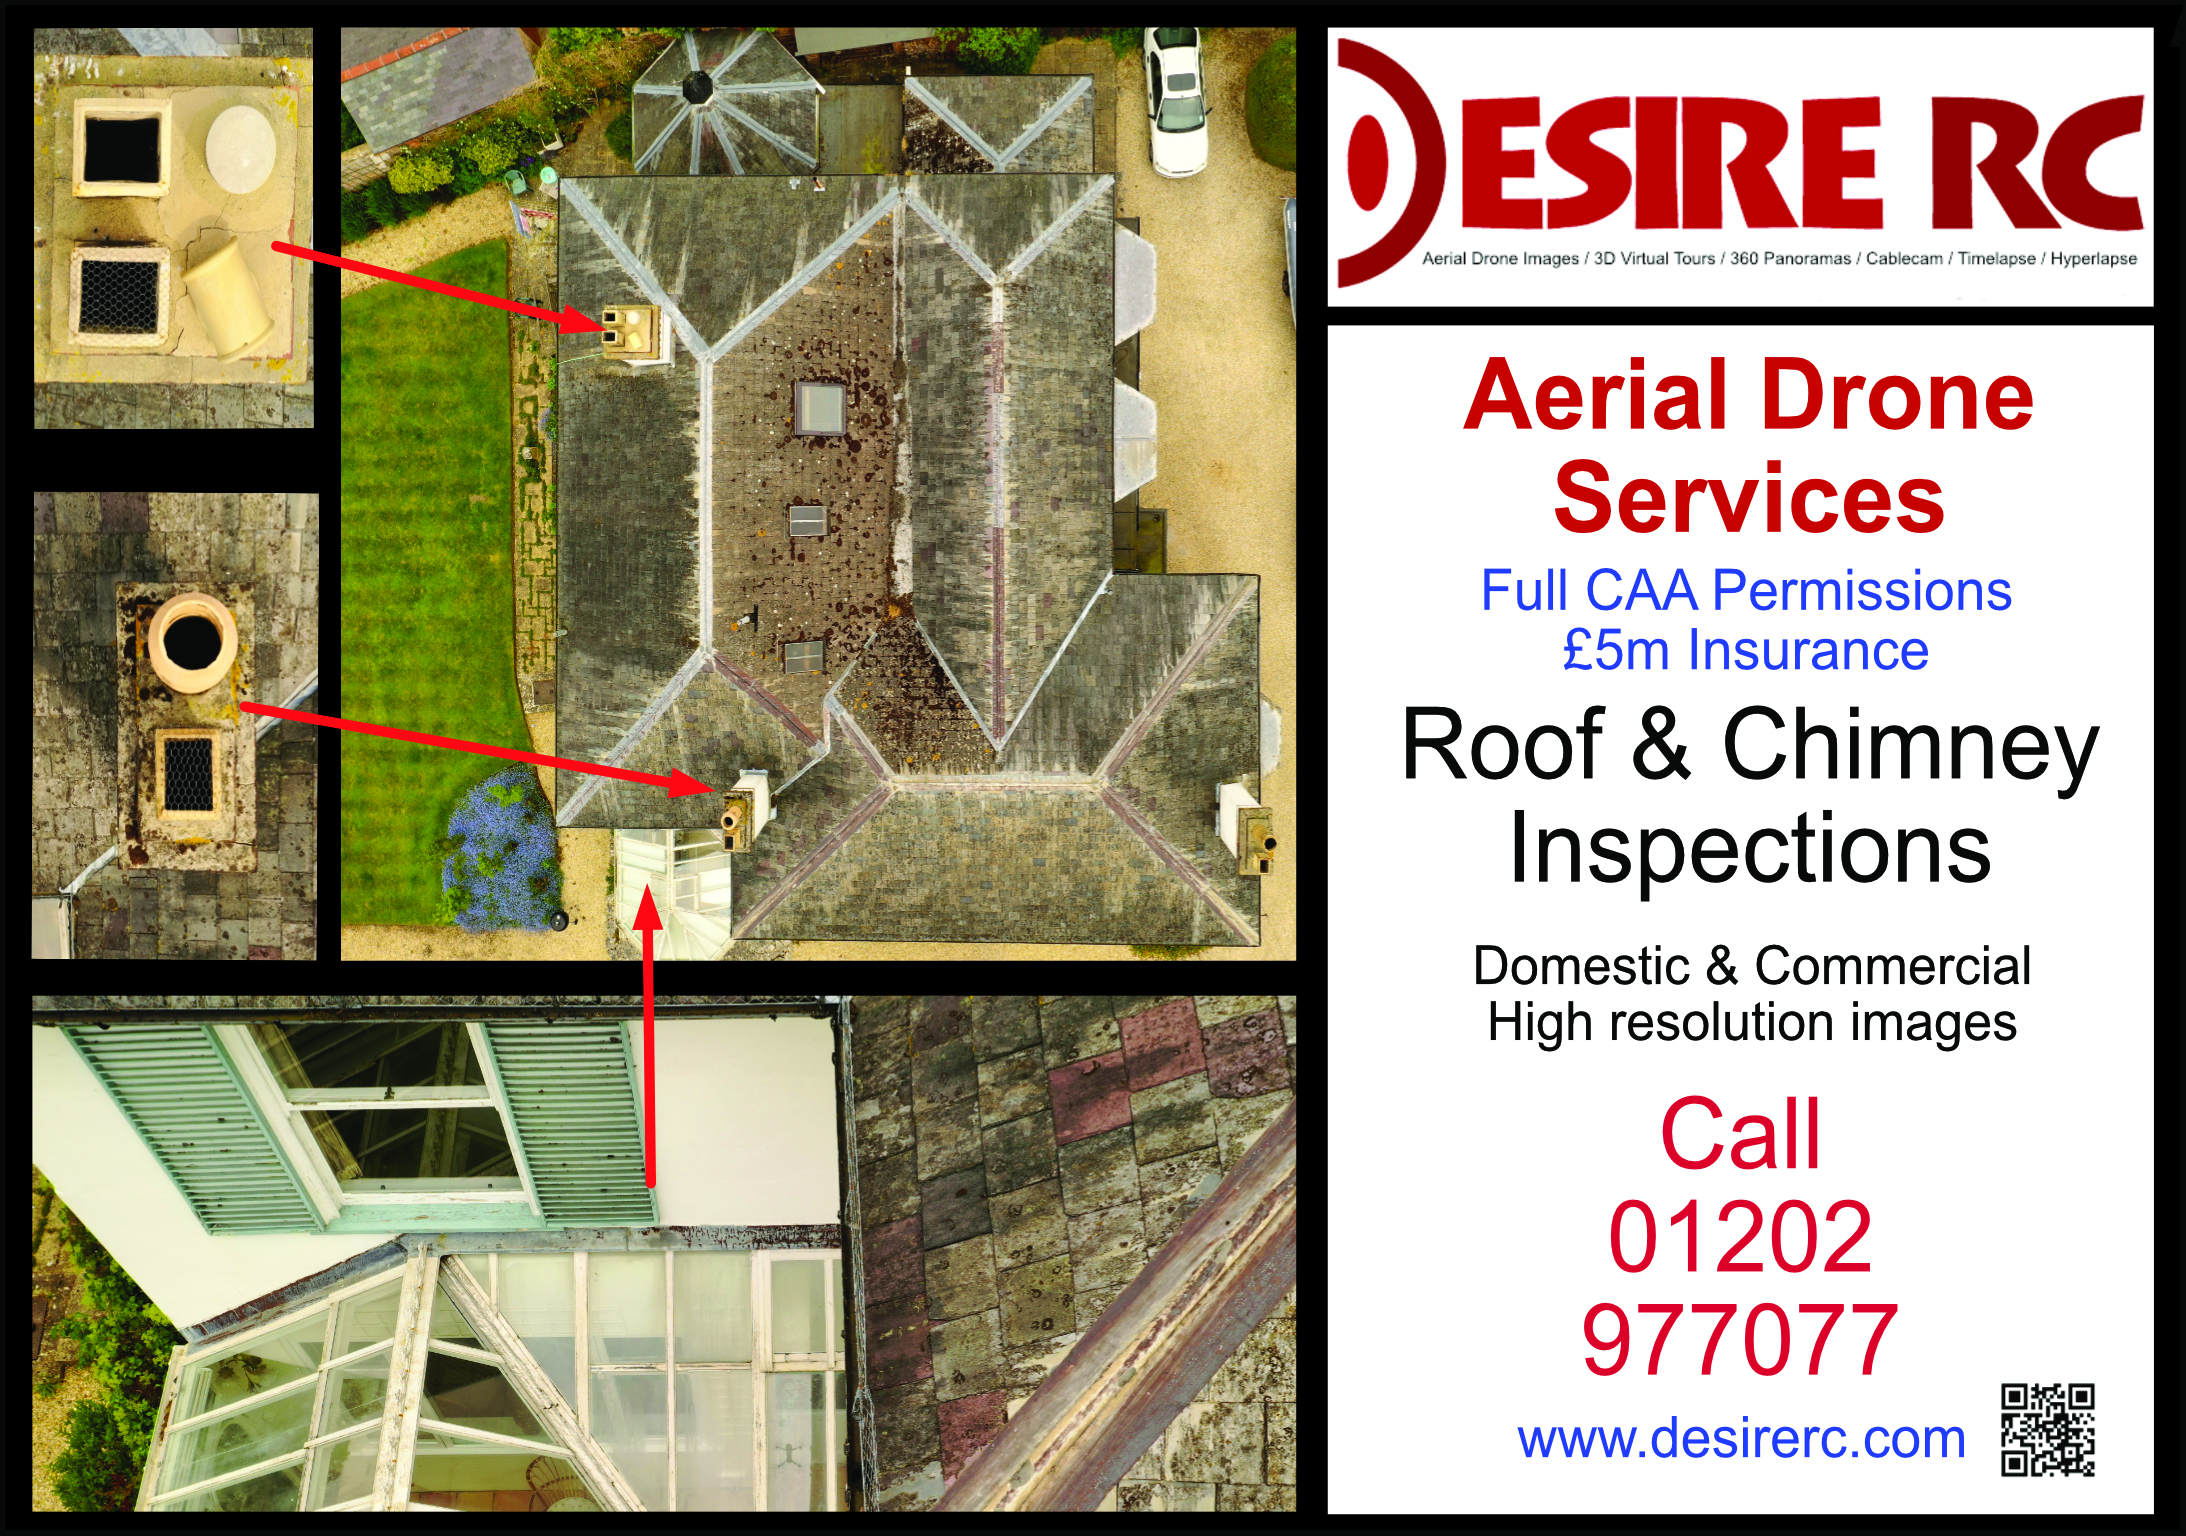 Do you need a roof survey, or are you a professional surveyor that needs to add this to your portfolio? Call us now!